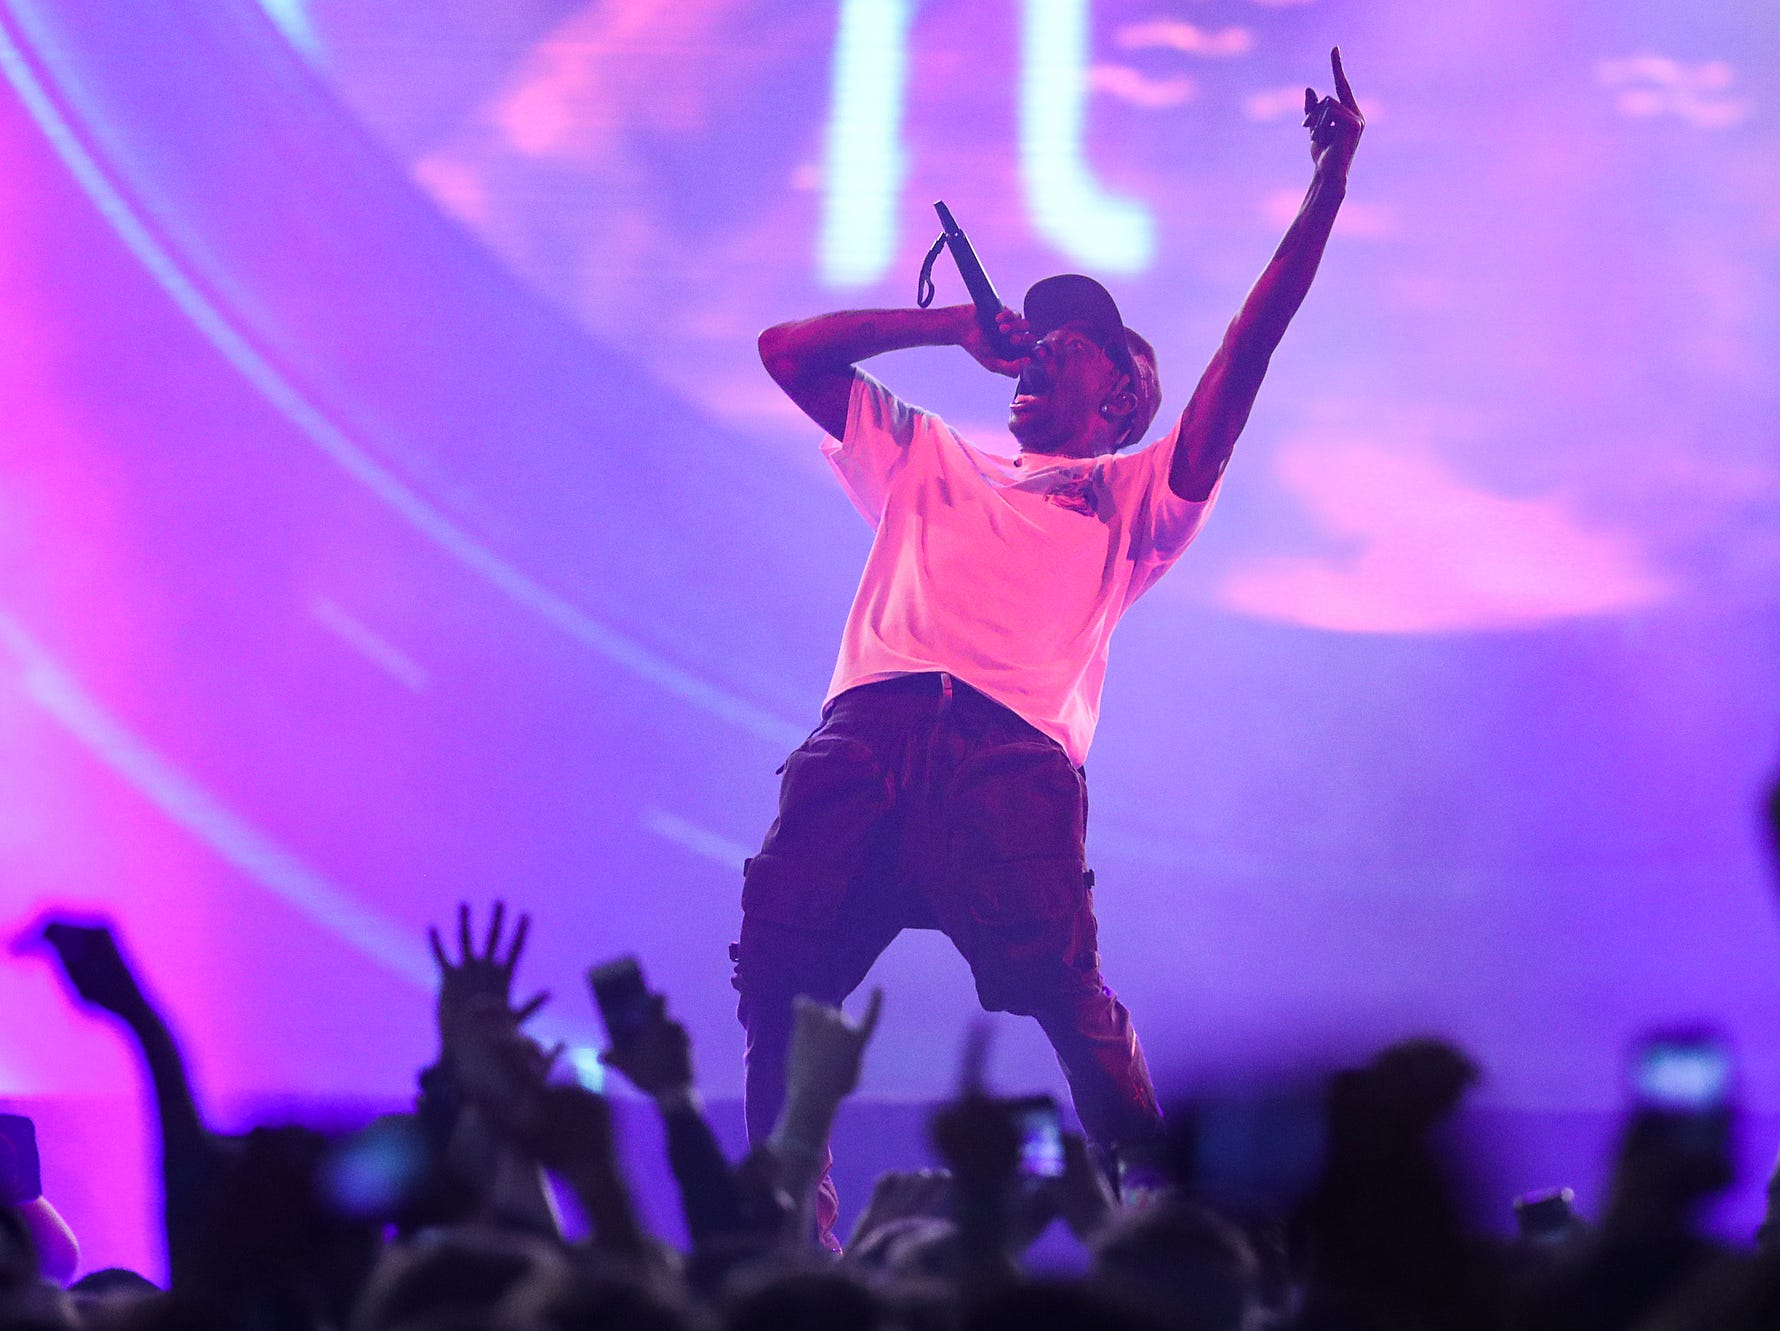 Travis Scott performs on his Astroworld Tour at Banker's Life Fieldhouse in Indianapolis on Wednesday, Feb. 20, 2018.